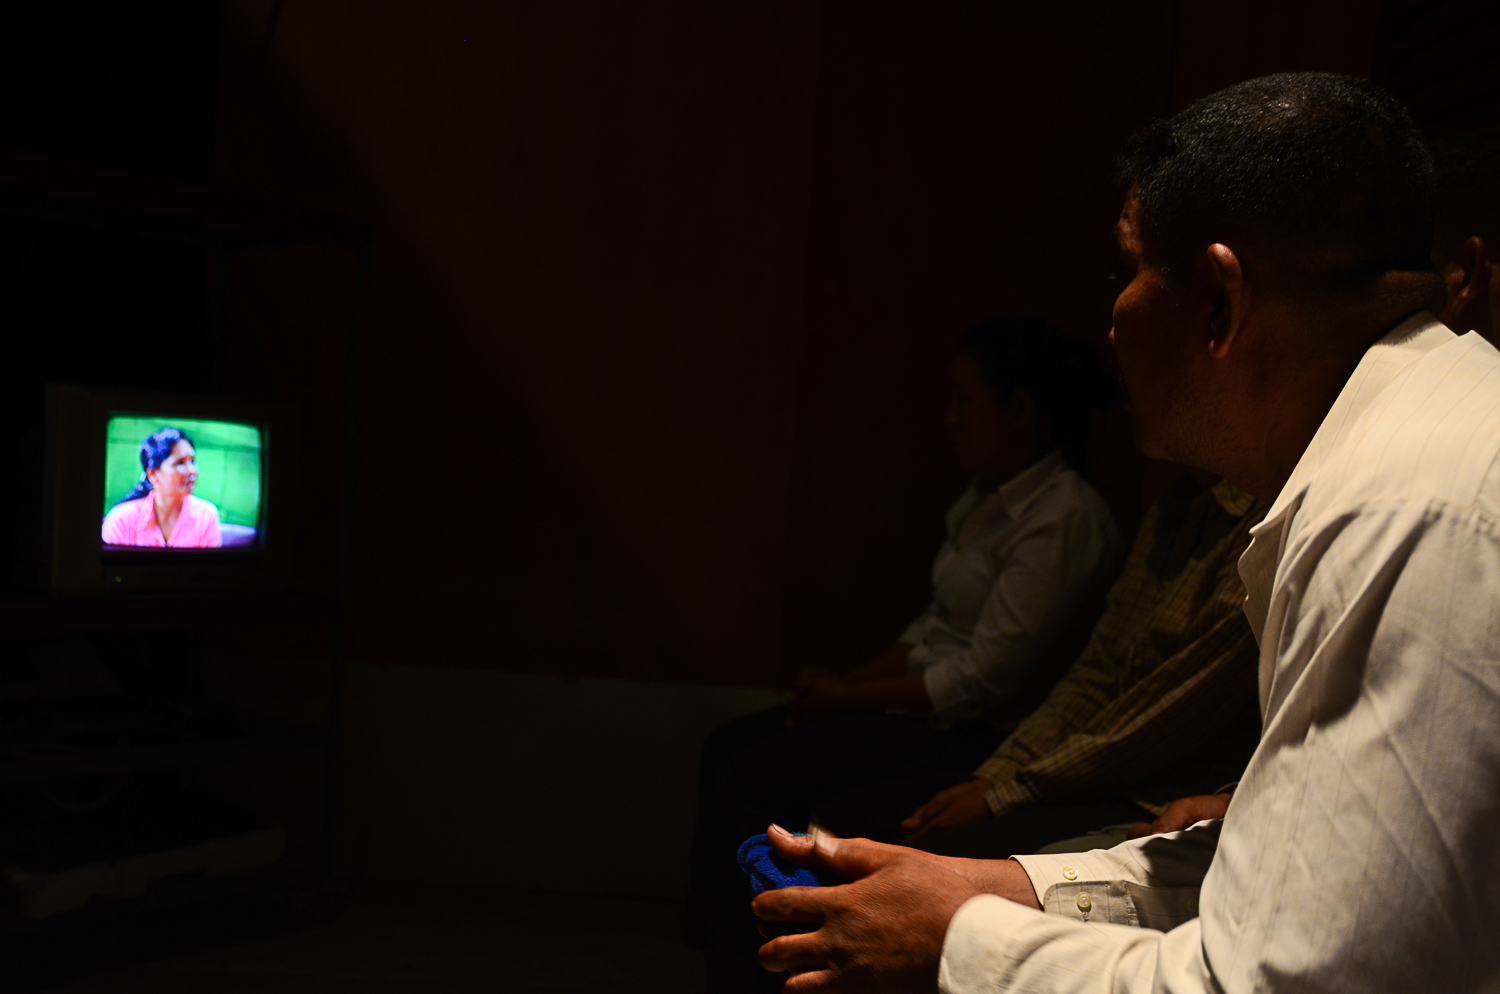 Khoem Sarom watches the show on a television screen backstage. He has not seen his niece since 1979.